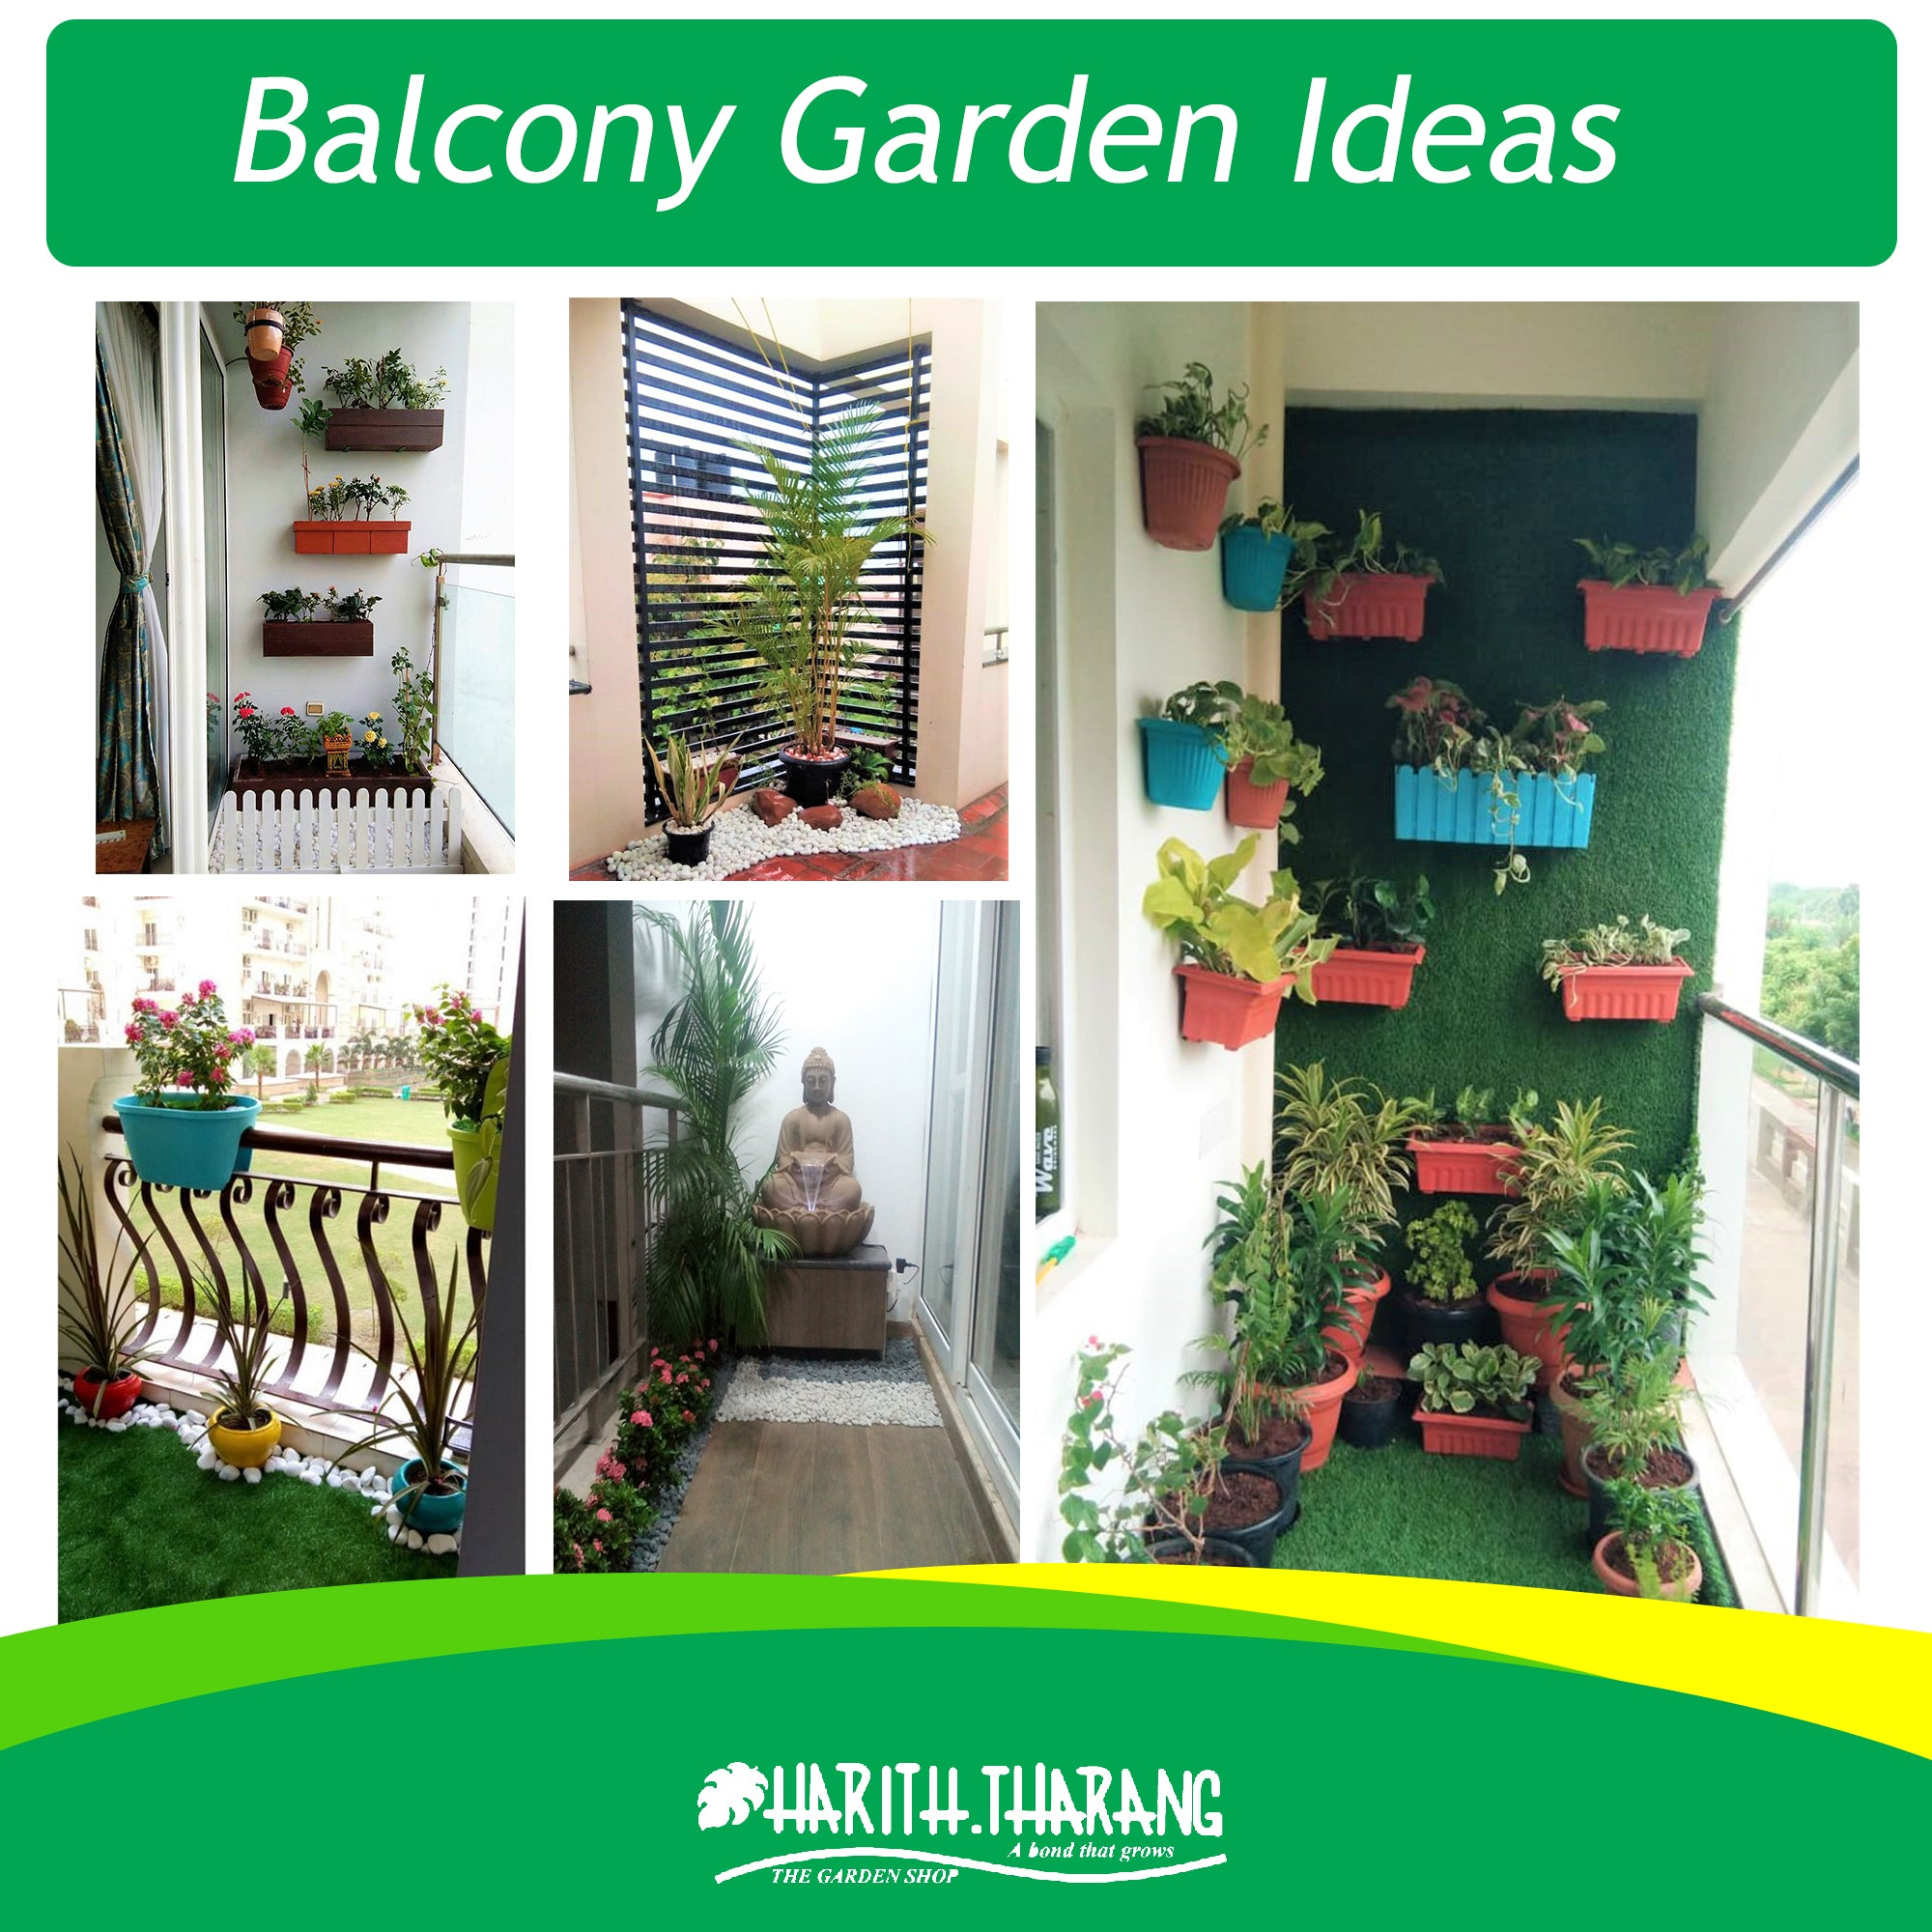 Simple balcony garden design ideas for Indian homes – hariththarang